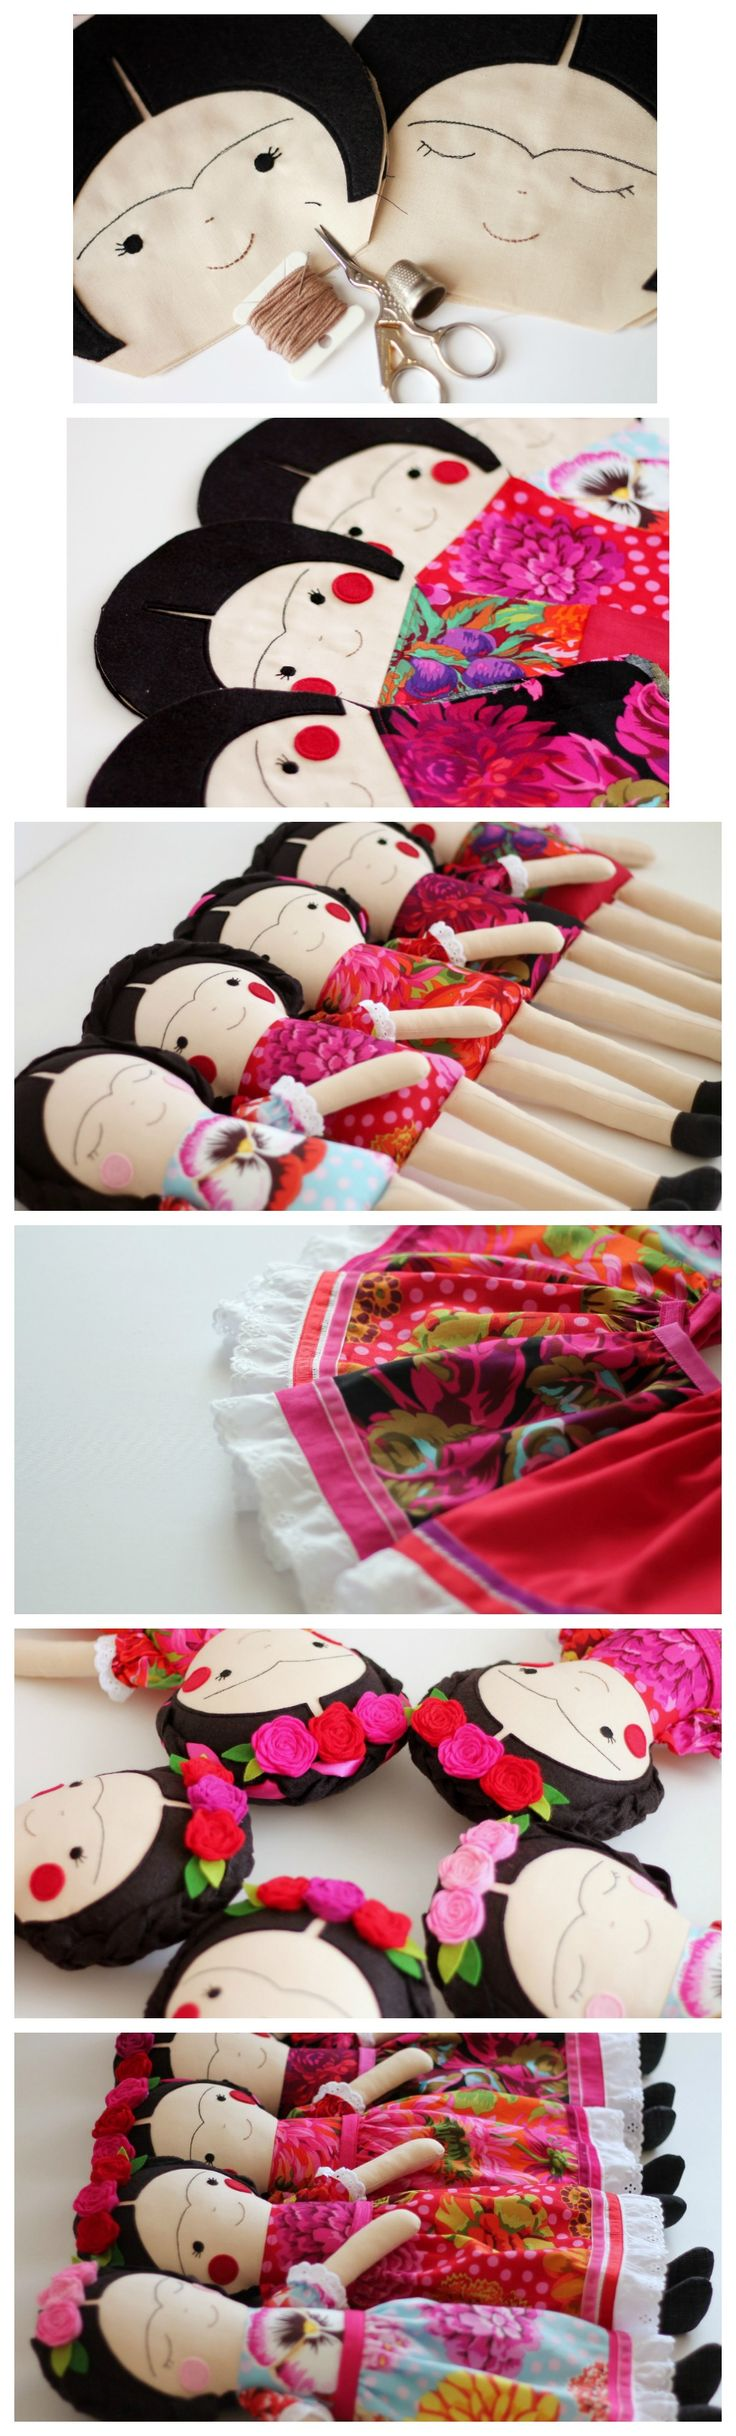 The making of Frida Kahlo handmade dolls by Anabela Félix. Heirloom and collectible dolls.